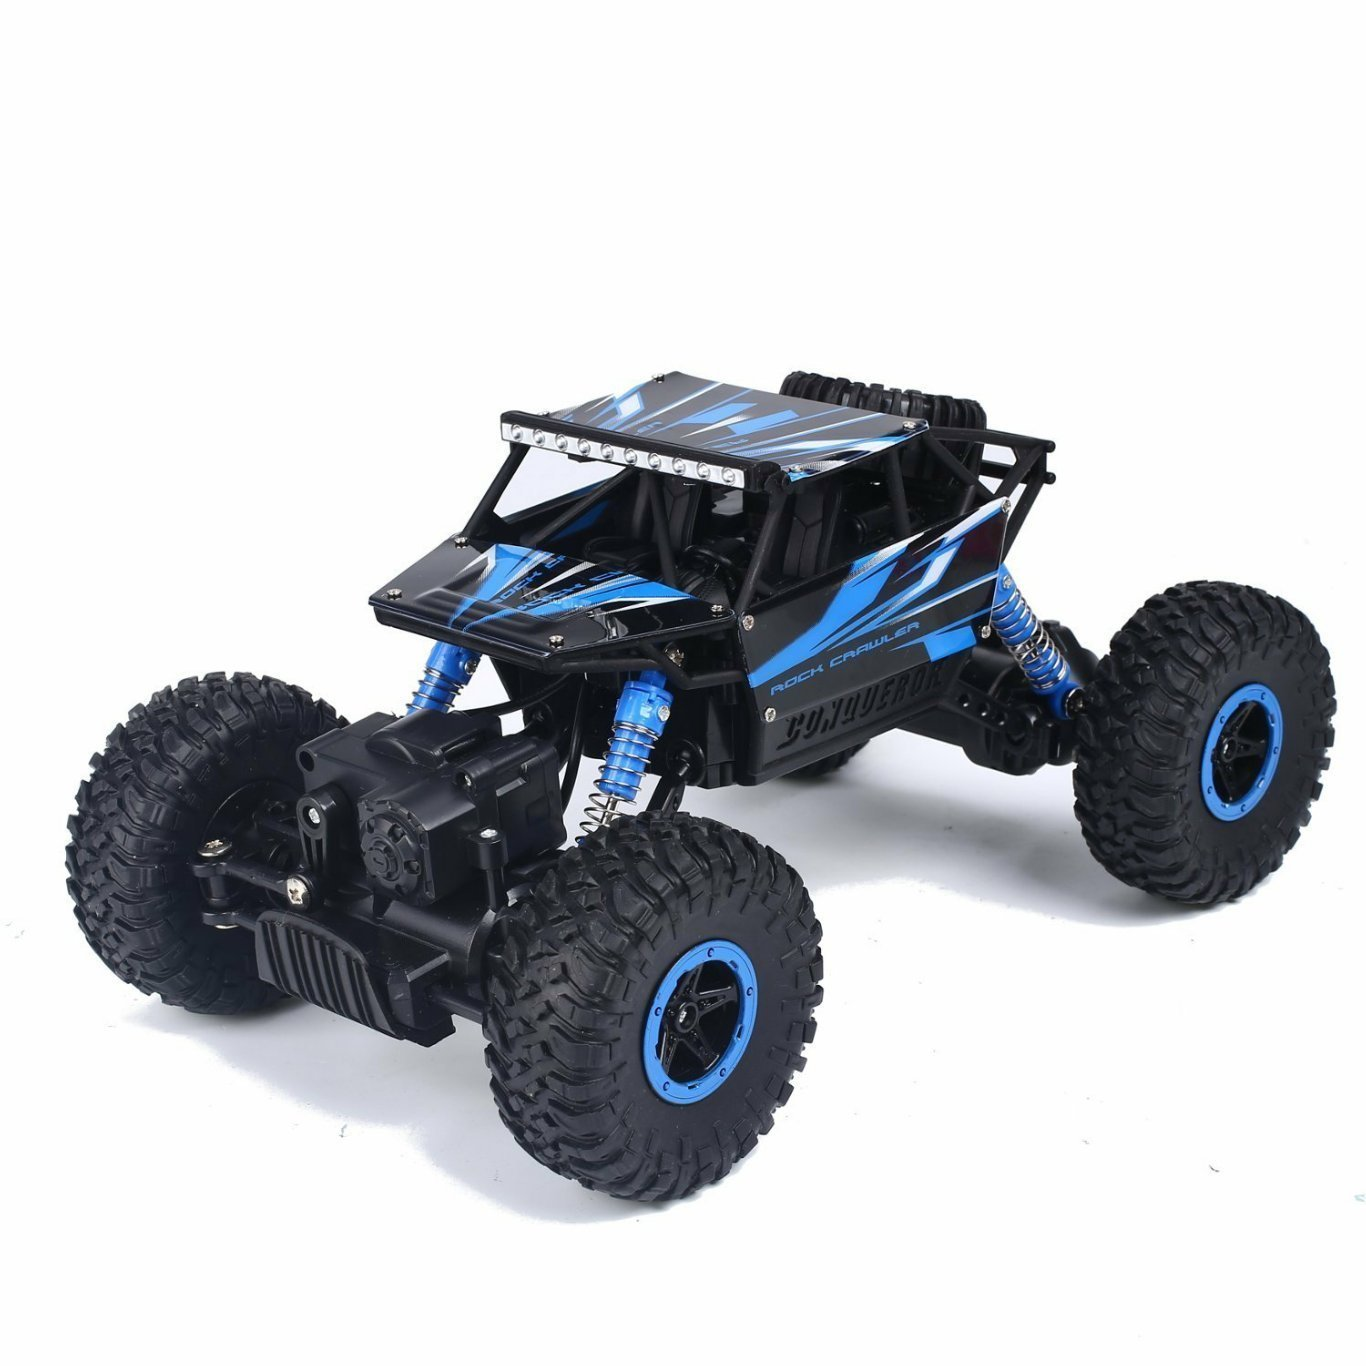 rc monster trucks for sale with 152325721476 on 2013 Rd Motorsports 2013 Jimco Trophy Truck 42623 as well Rc Car Trucks Kits likewise Watch moreover 20 Strange Rc Vehicles That Will Make You Say Huh further Modified Mahindra Jeep For Sale In Kerala.